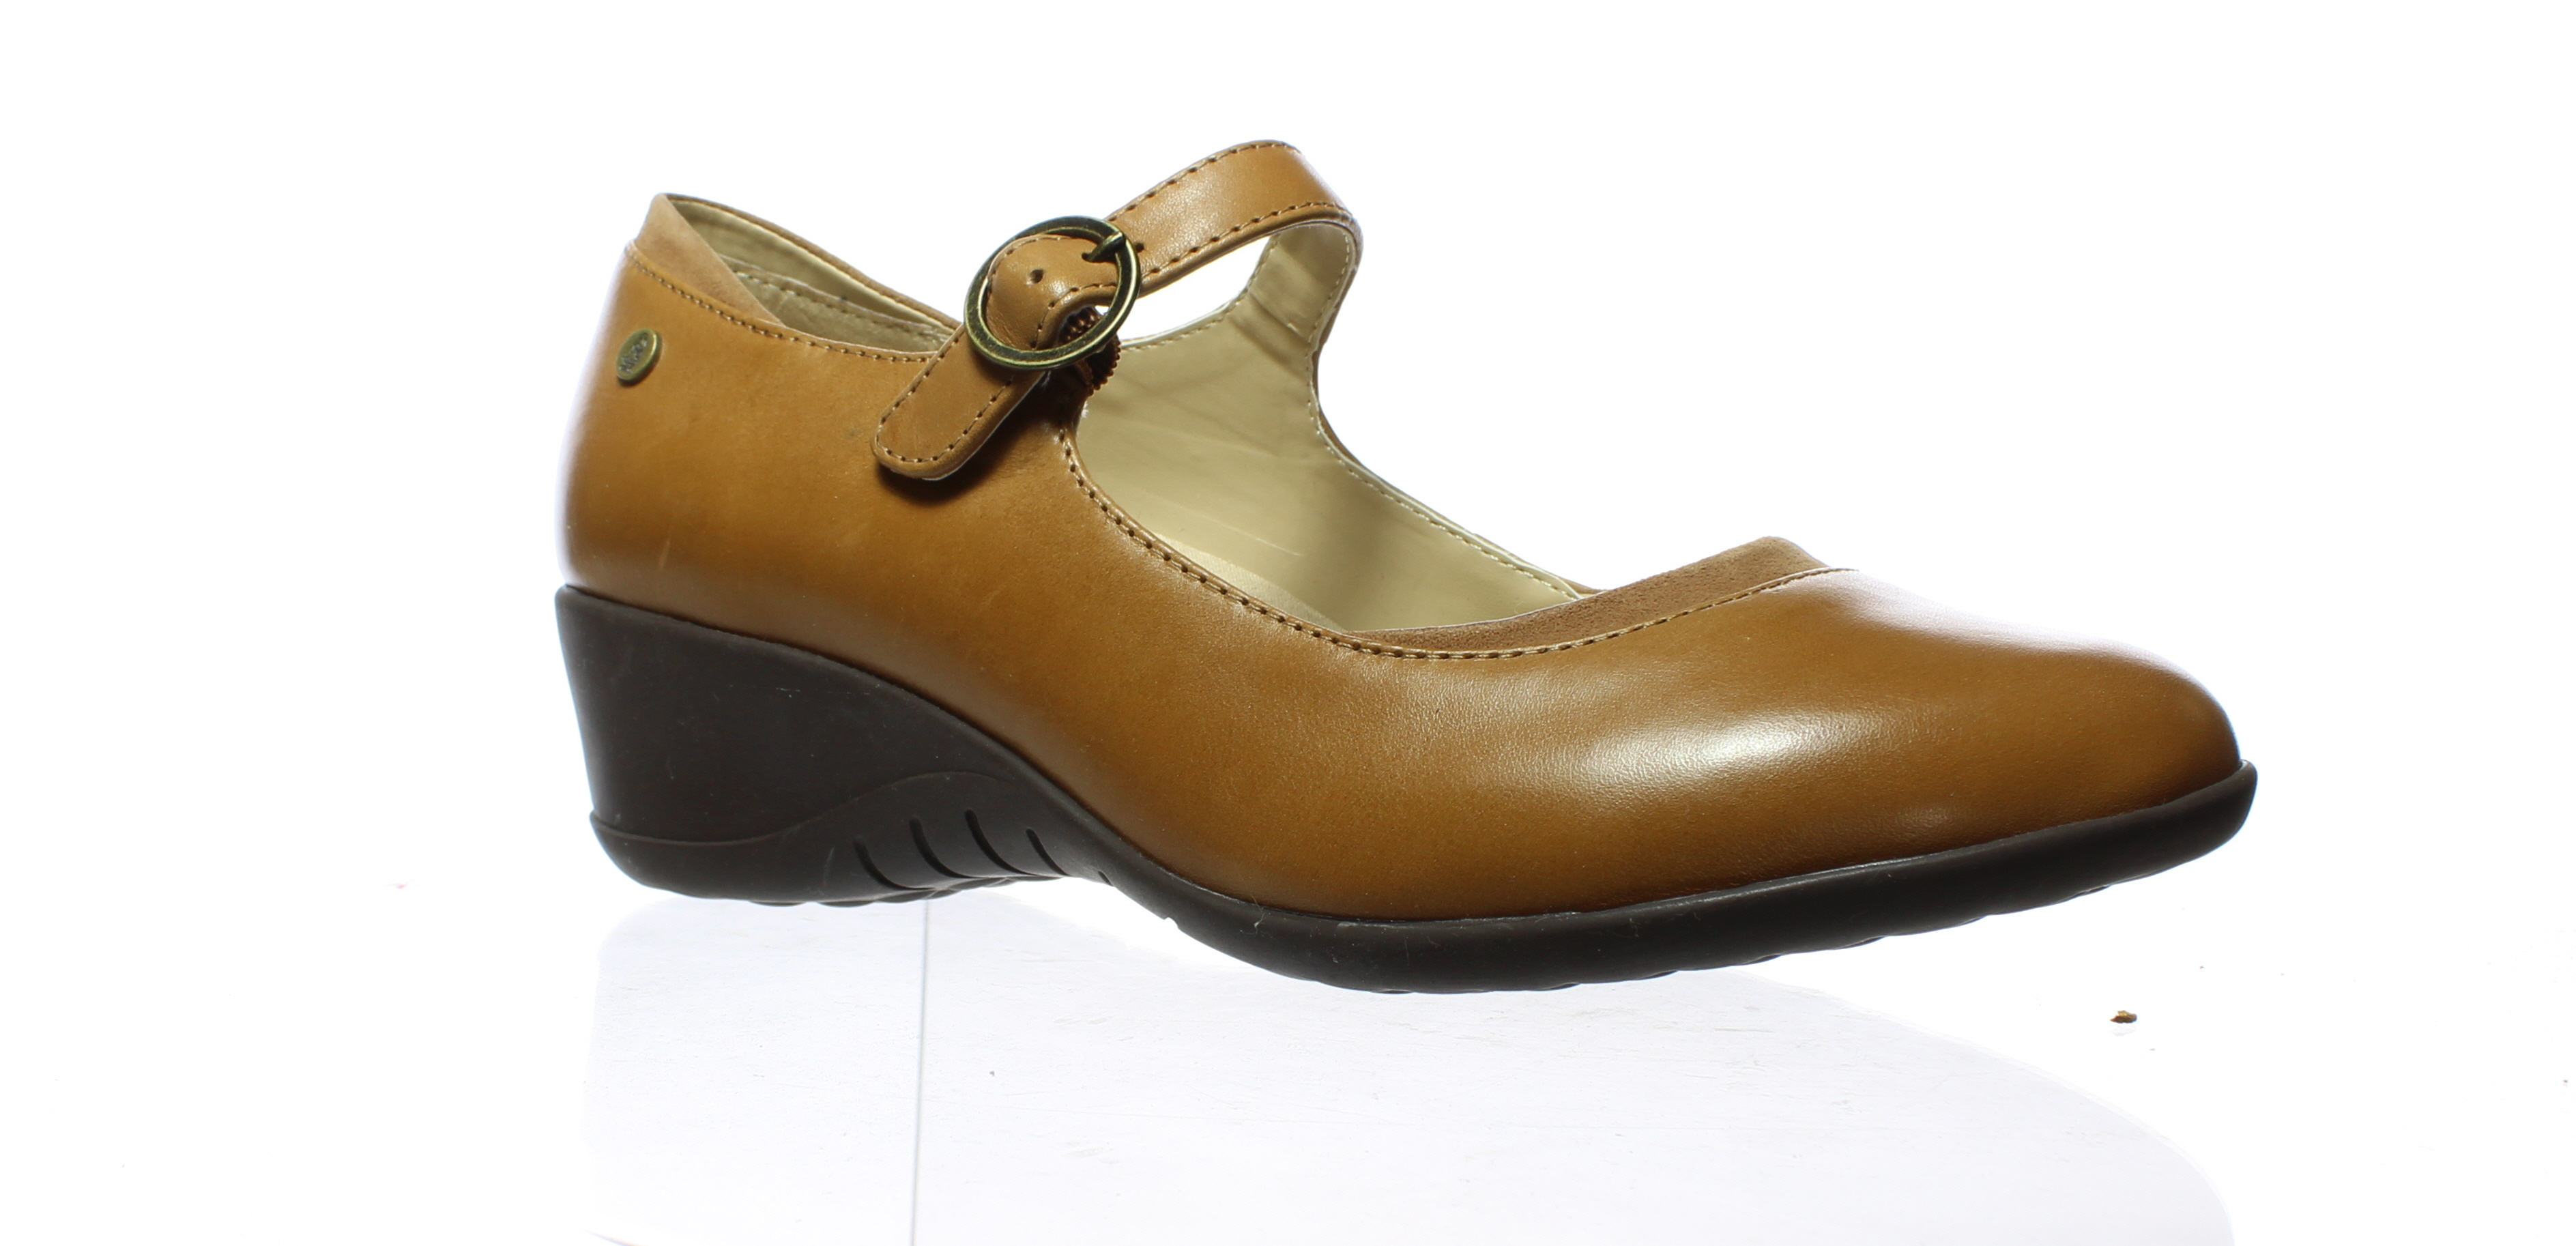 919bca22602b Hush Puppies Womens Odell Tan Leather Mary Jane Heels Size 9 (C